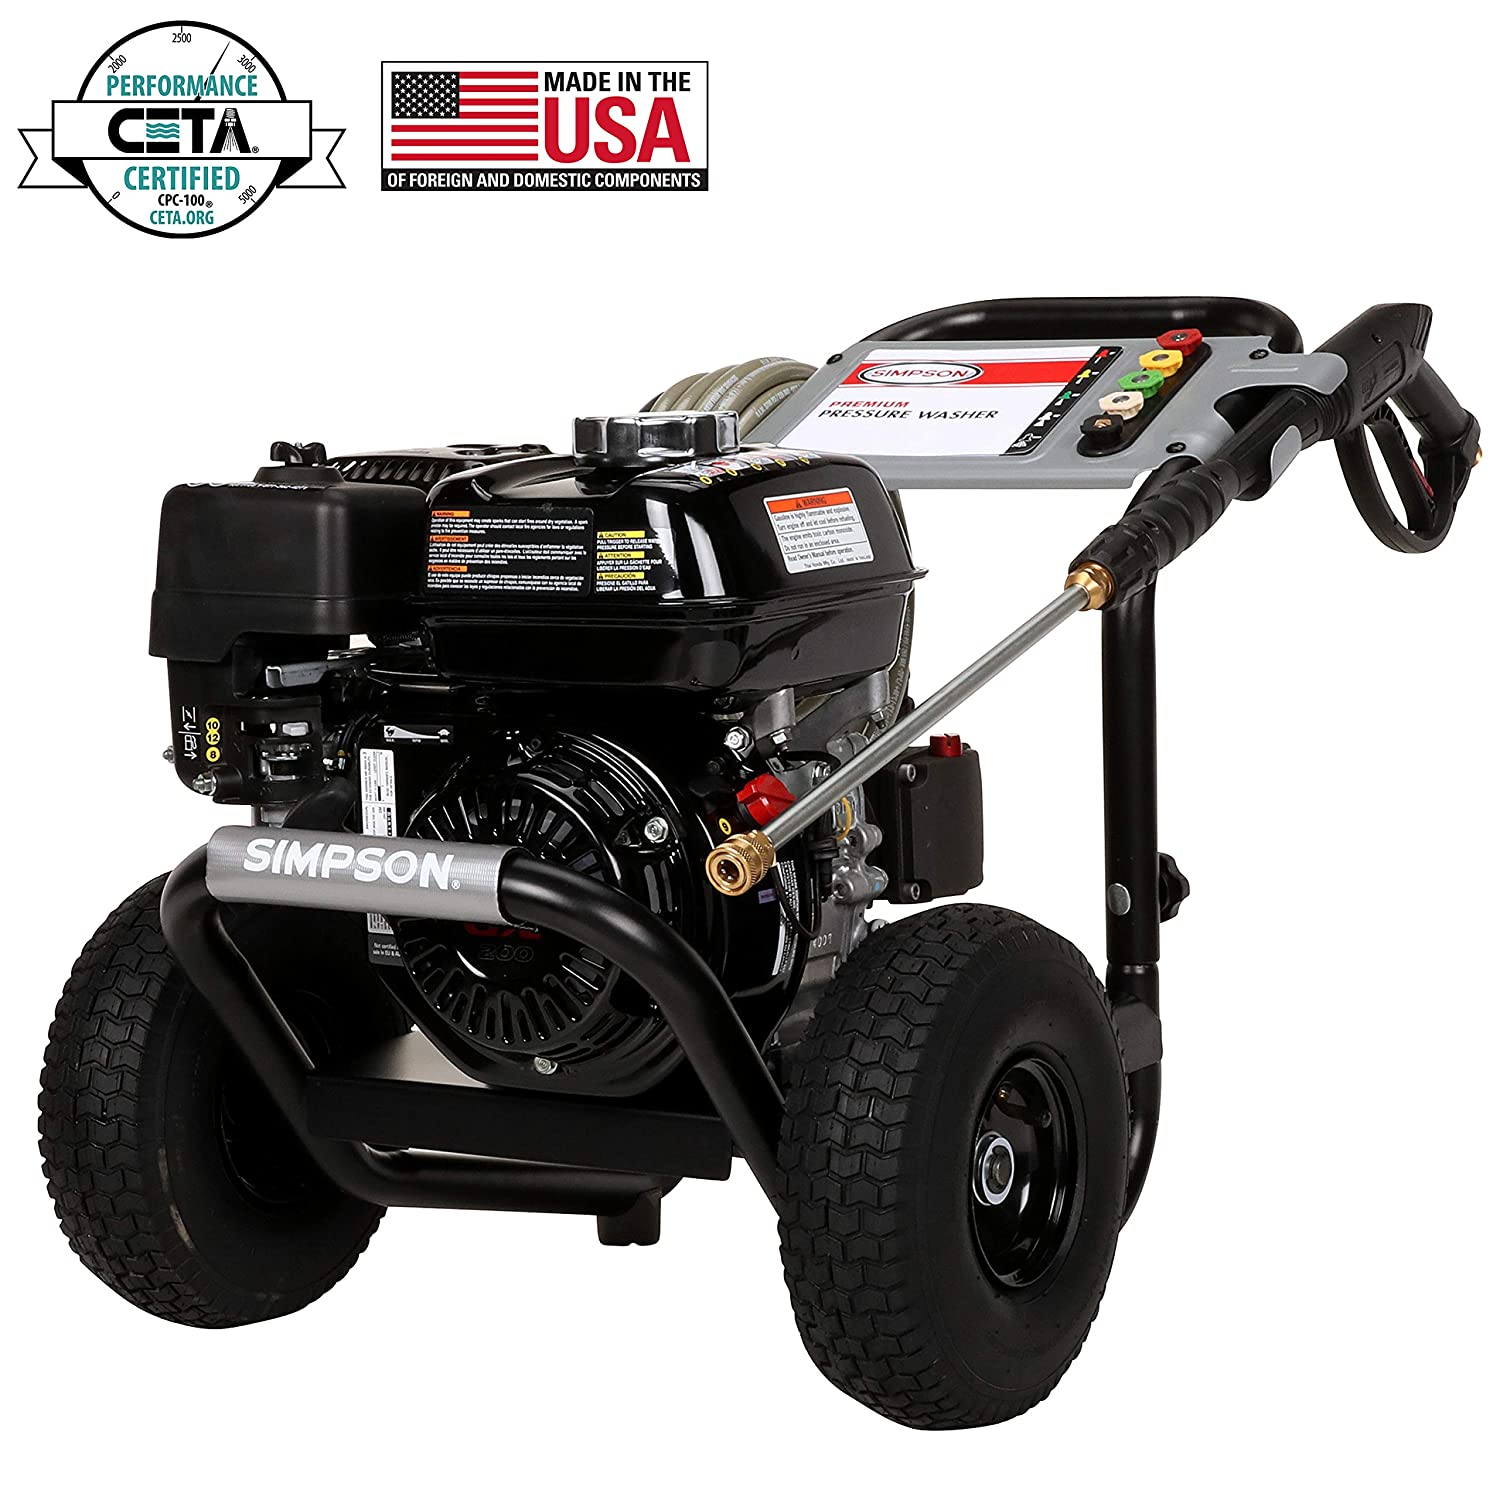 SIMPSON Cleaning PS3228 PowerShot Gas Pressure Washer Powered by Honda GX200, 3300 PSI at 2.5 GPM, Black